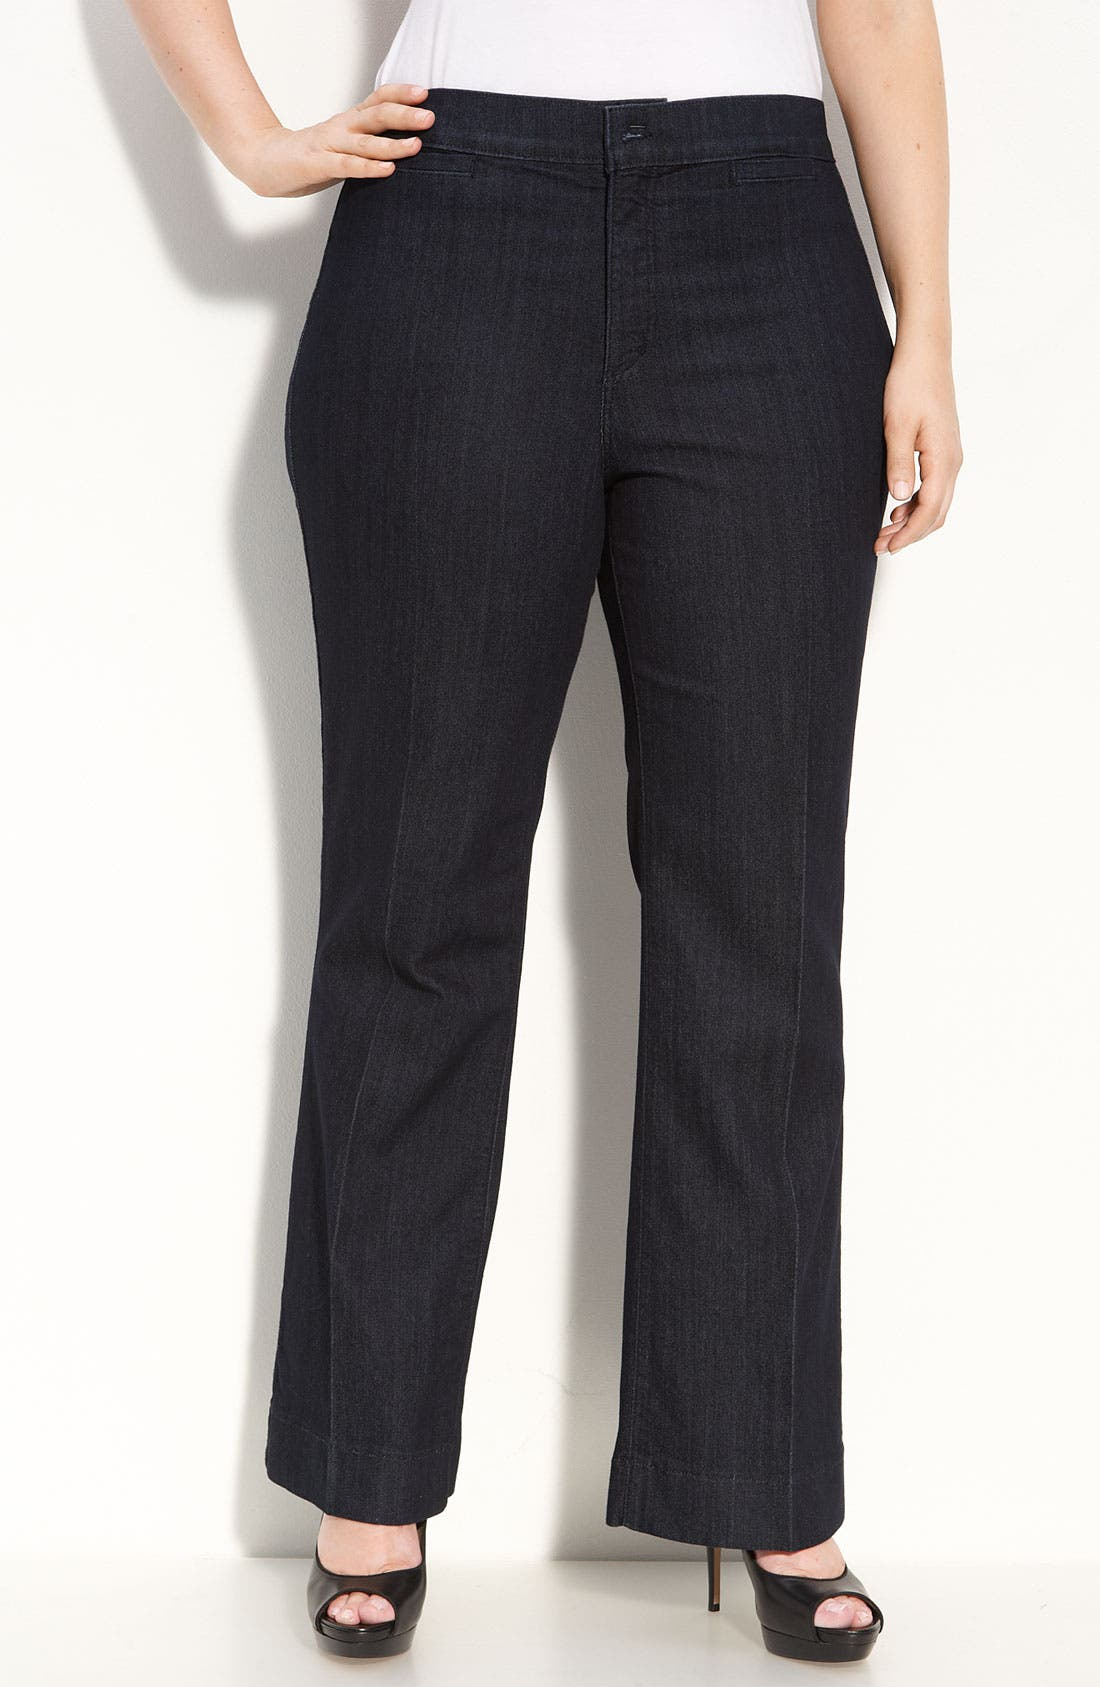 Alternate Image 1 Selected - NYDJ 'Michelle' Trouser Jeans (Plus Size)